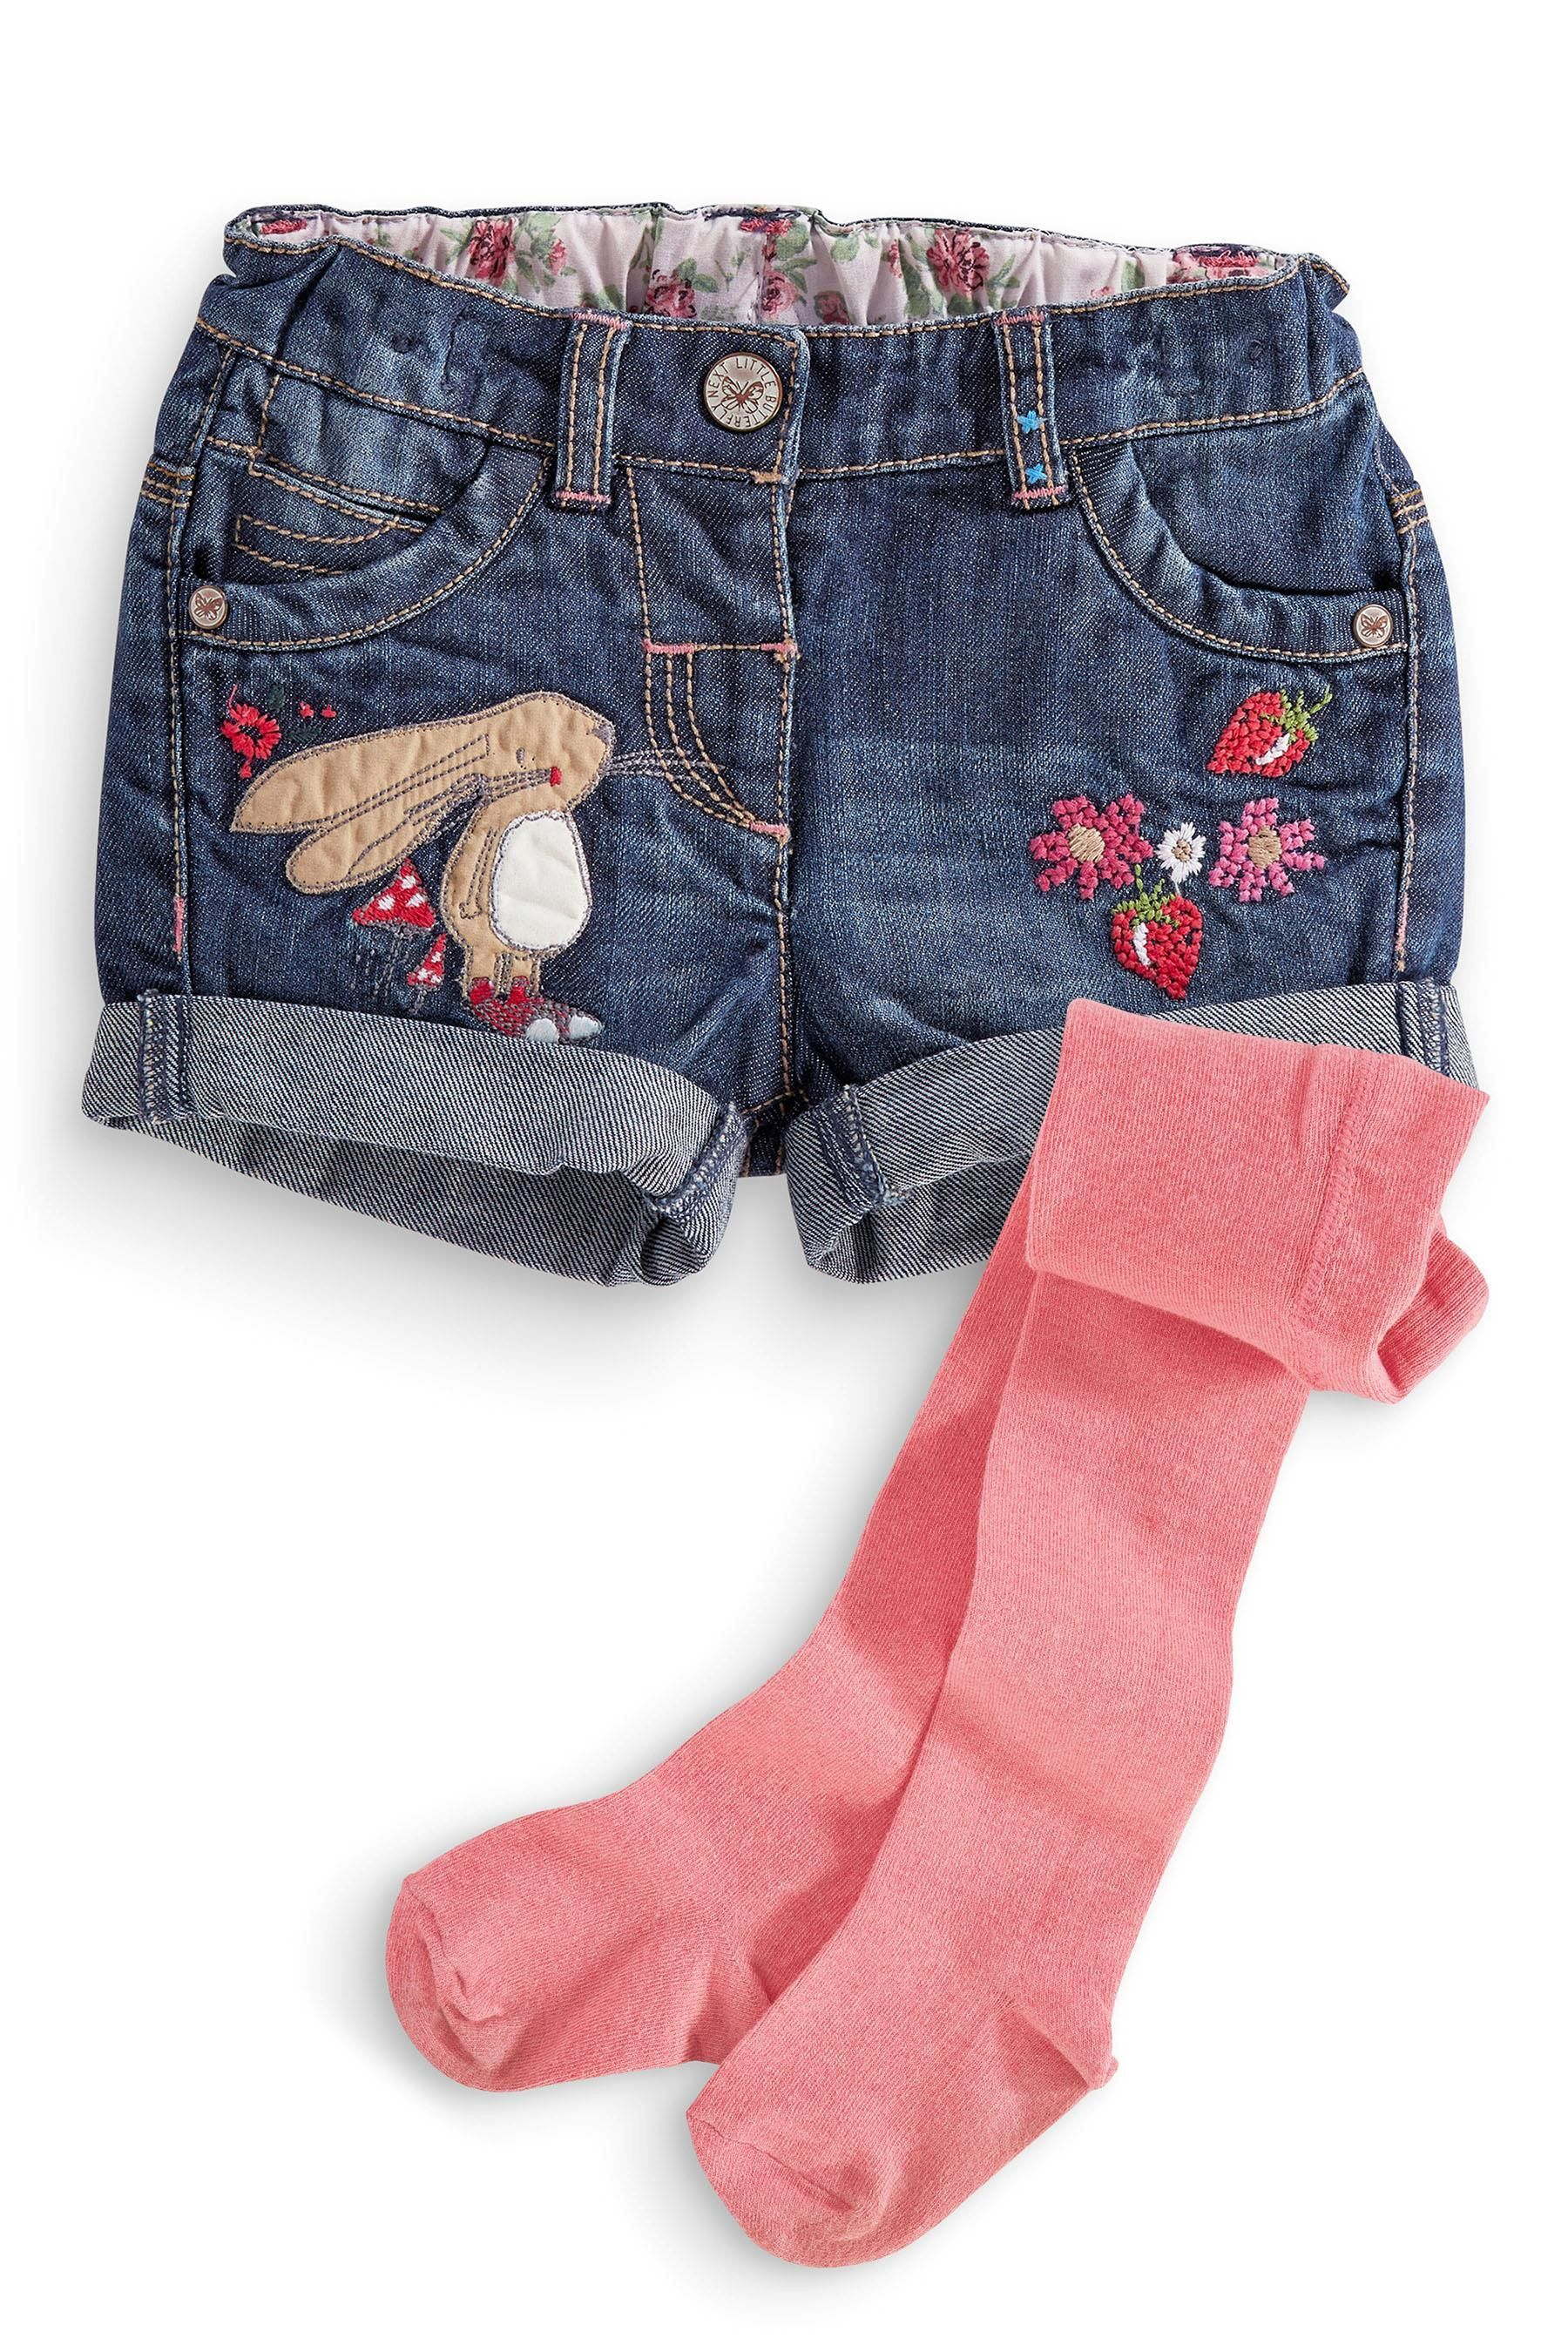 Buy Bunny Denim Shorts And Tights Set 3mths 6yrs from the Next UK